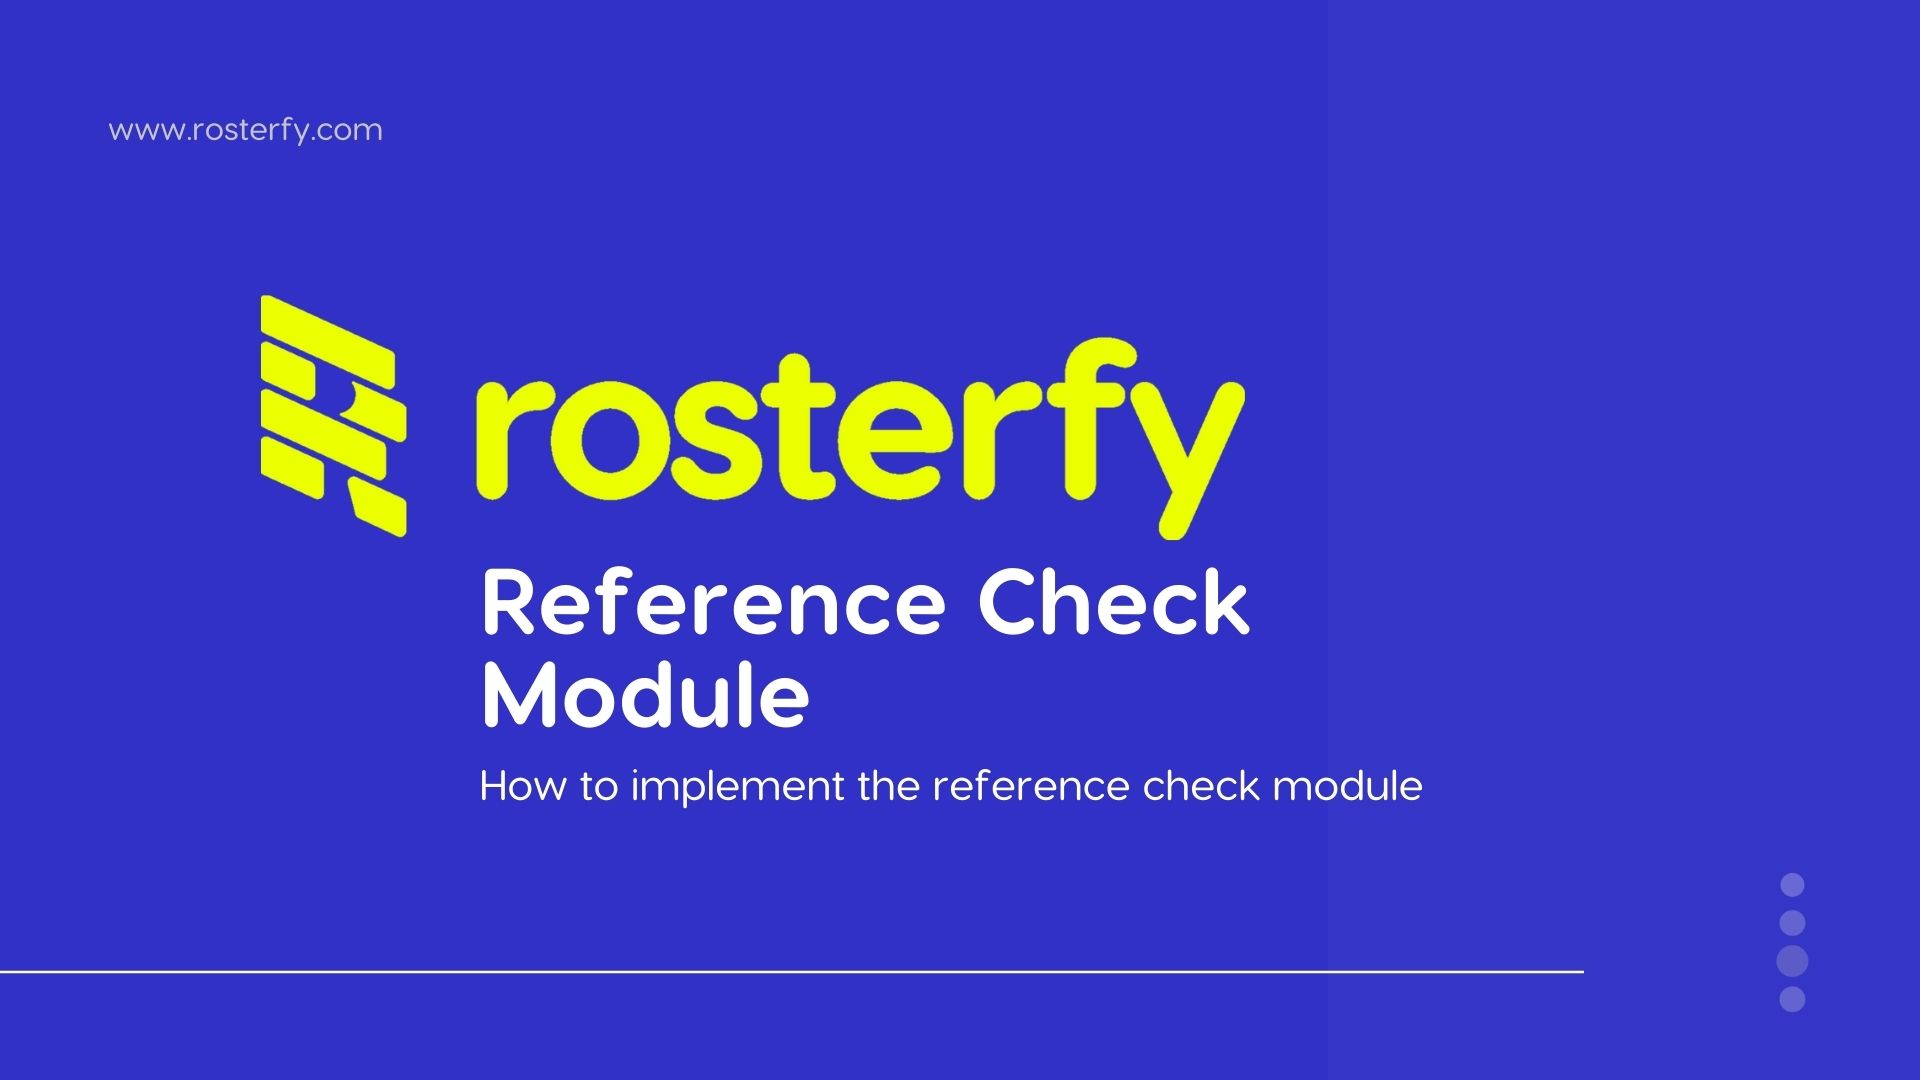 Reference Check Module